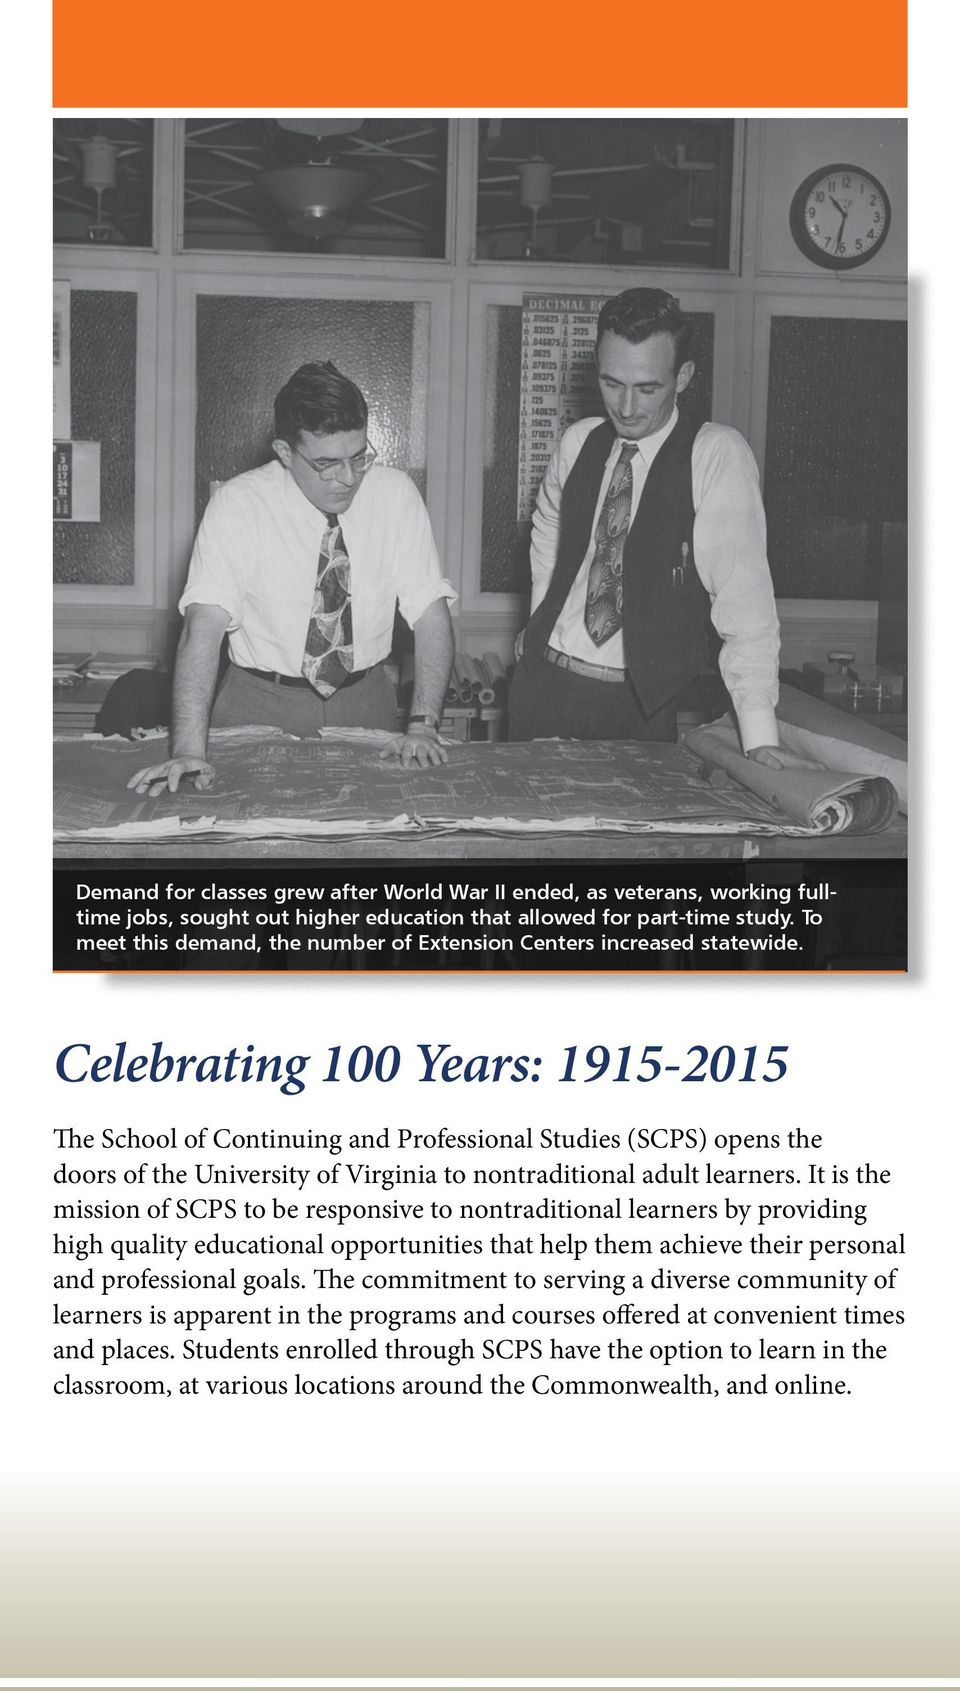 Celebrating 100 Years: 1915-2015 The School of Continuing and Professional Studies (SCPS) opens the doors of the University of Virginia to nontraditional adult learners.